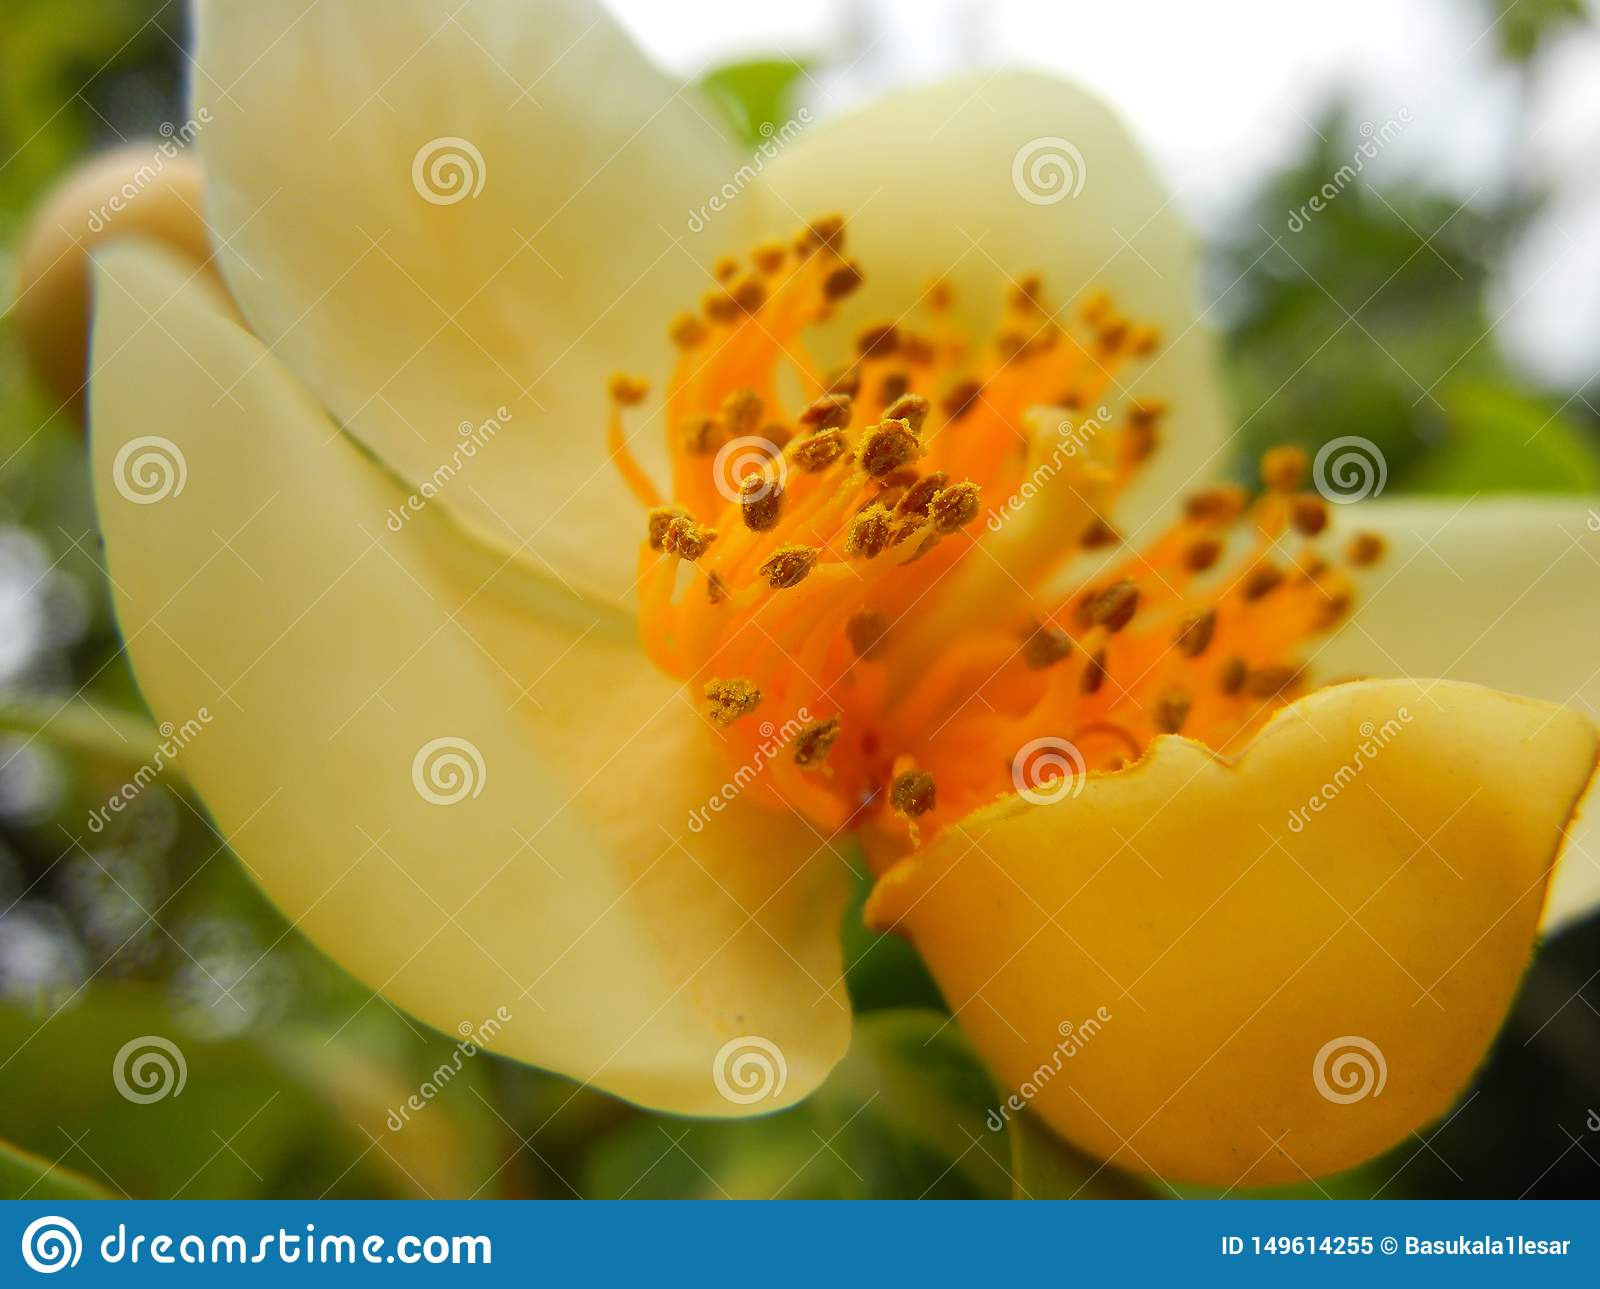 Schima sp. yellowish petaled flower macro shot closeup